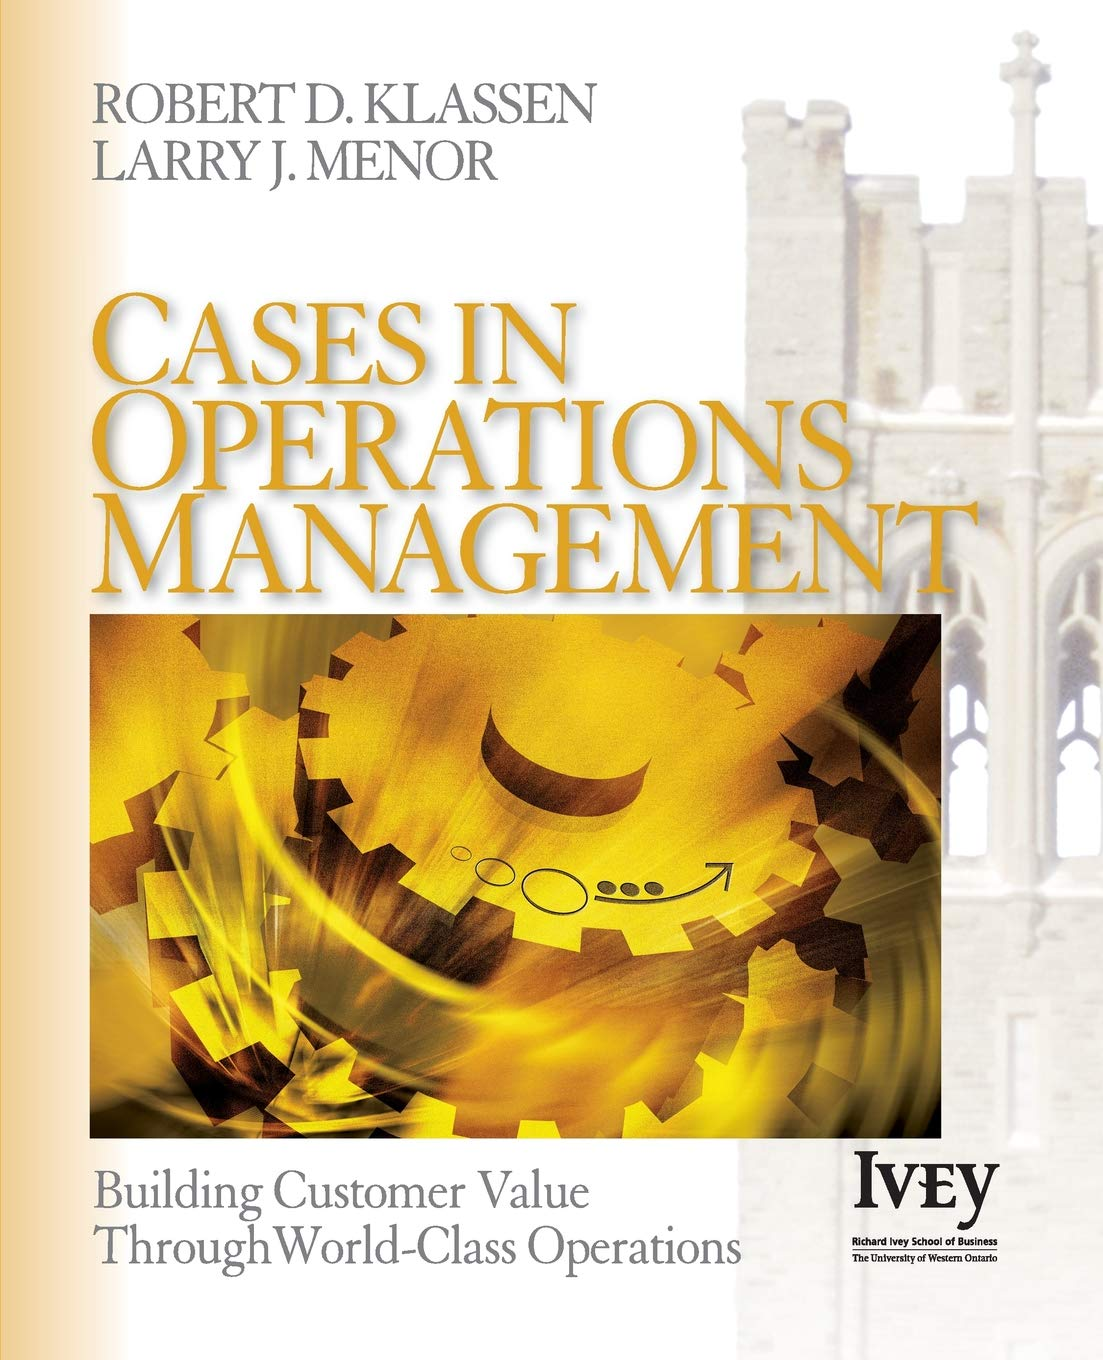 Image OfCases In Operations Management: Building Customer Value Through World-Class Operations (THE IVEY CASEBOOK SERIES)